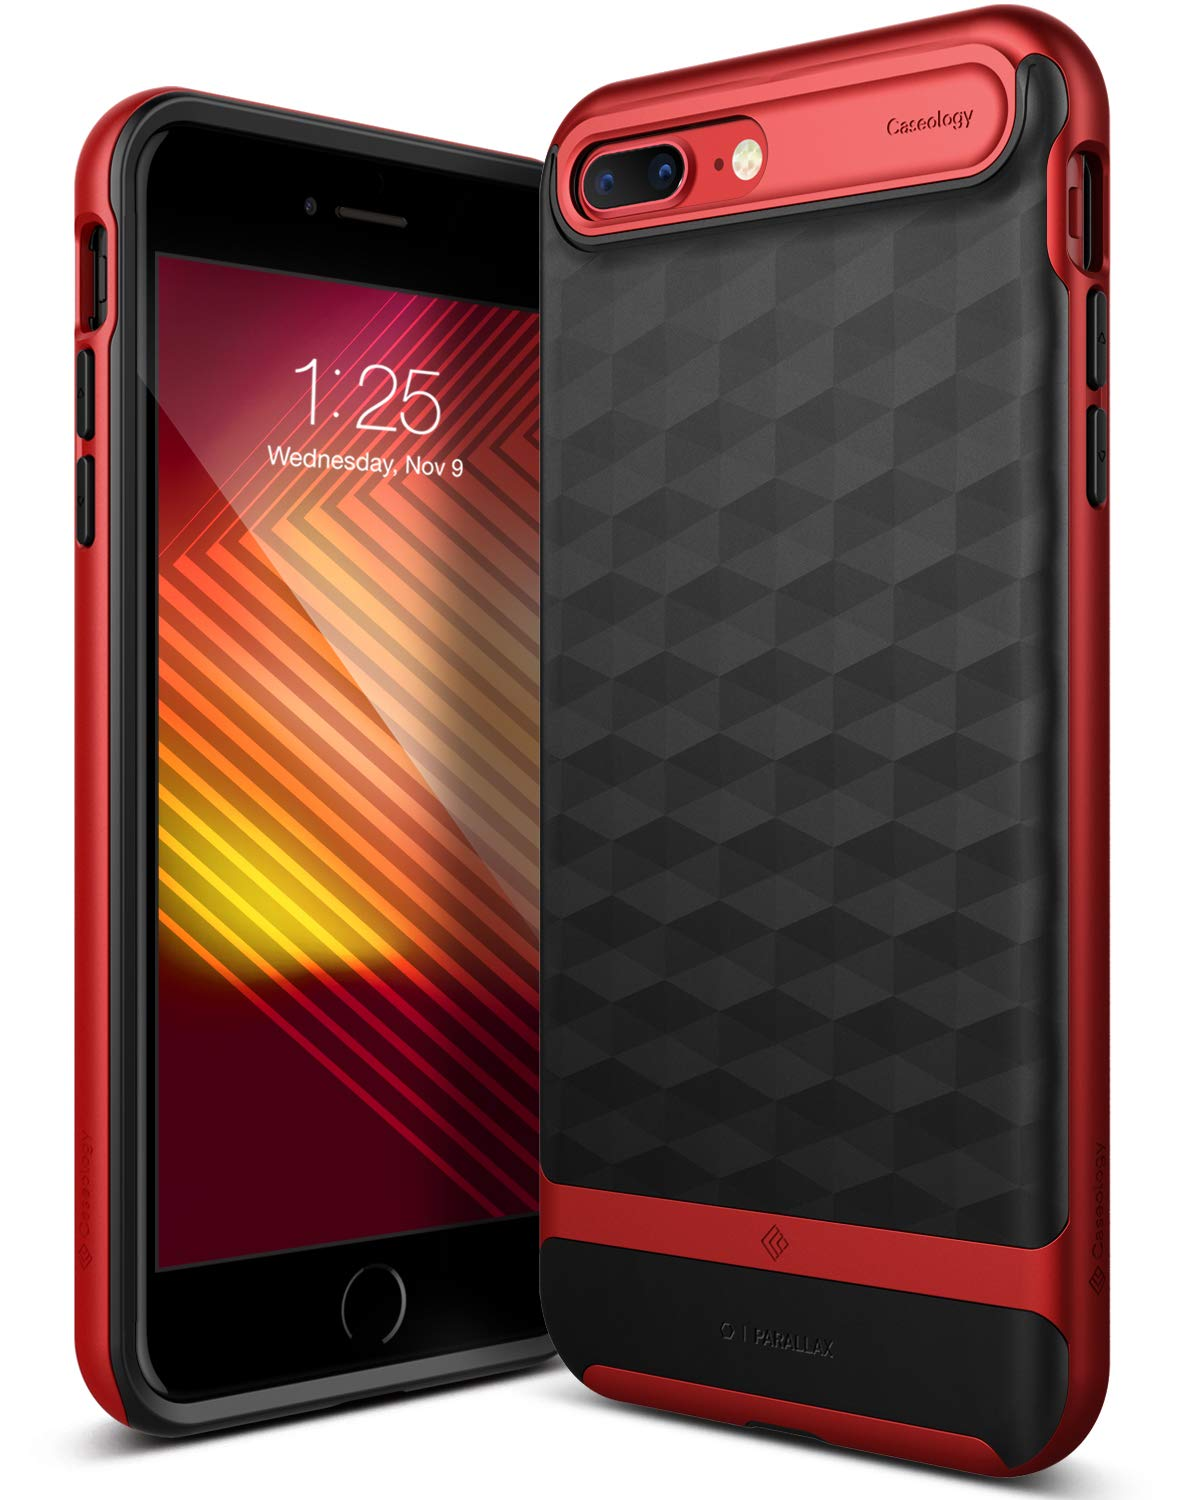 Caseology for iPhone 8 Plus case/iPhone 7 Plus case [Parallax Series] - Slim Protective Secure Grip with Textured Geometric Design Case for iPhone 8 Plus/iPhone 7 Plus - Black/Red